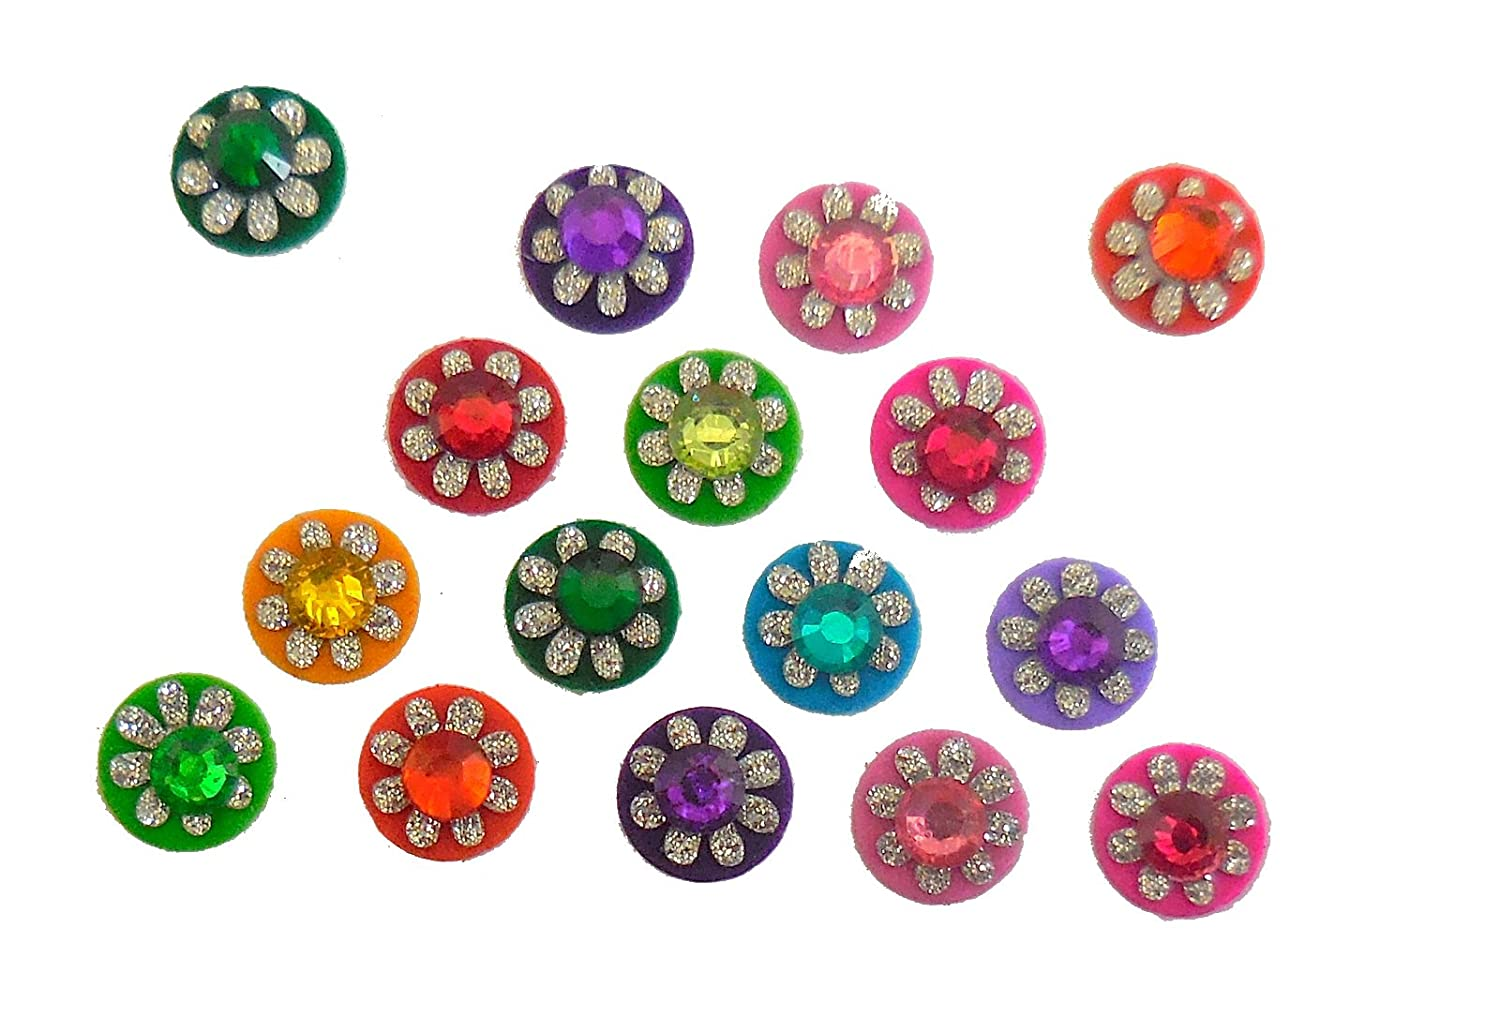 4 Packs - 64 Colorful Crystal Bindi Velvette round face jewels Tika Sheesham IVY LLP